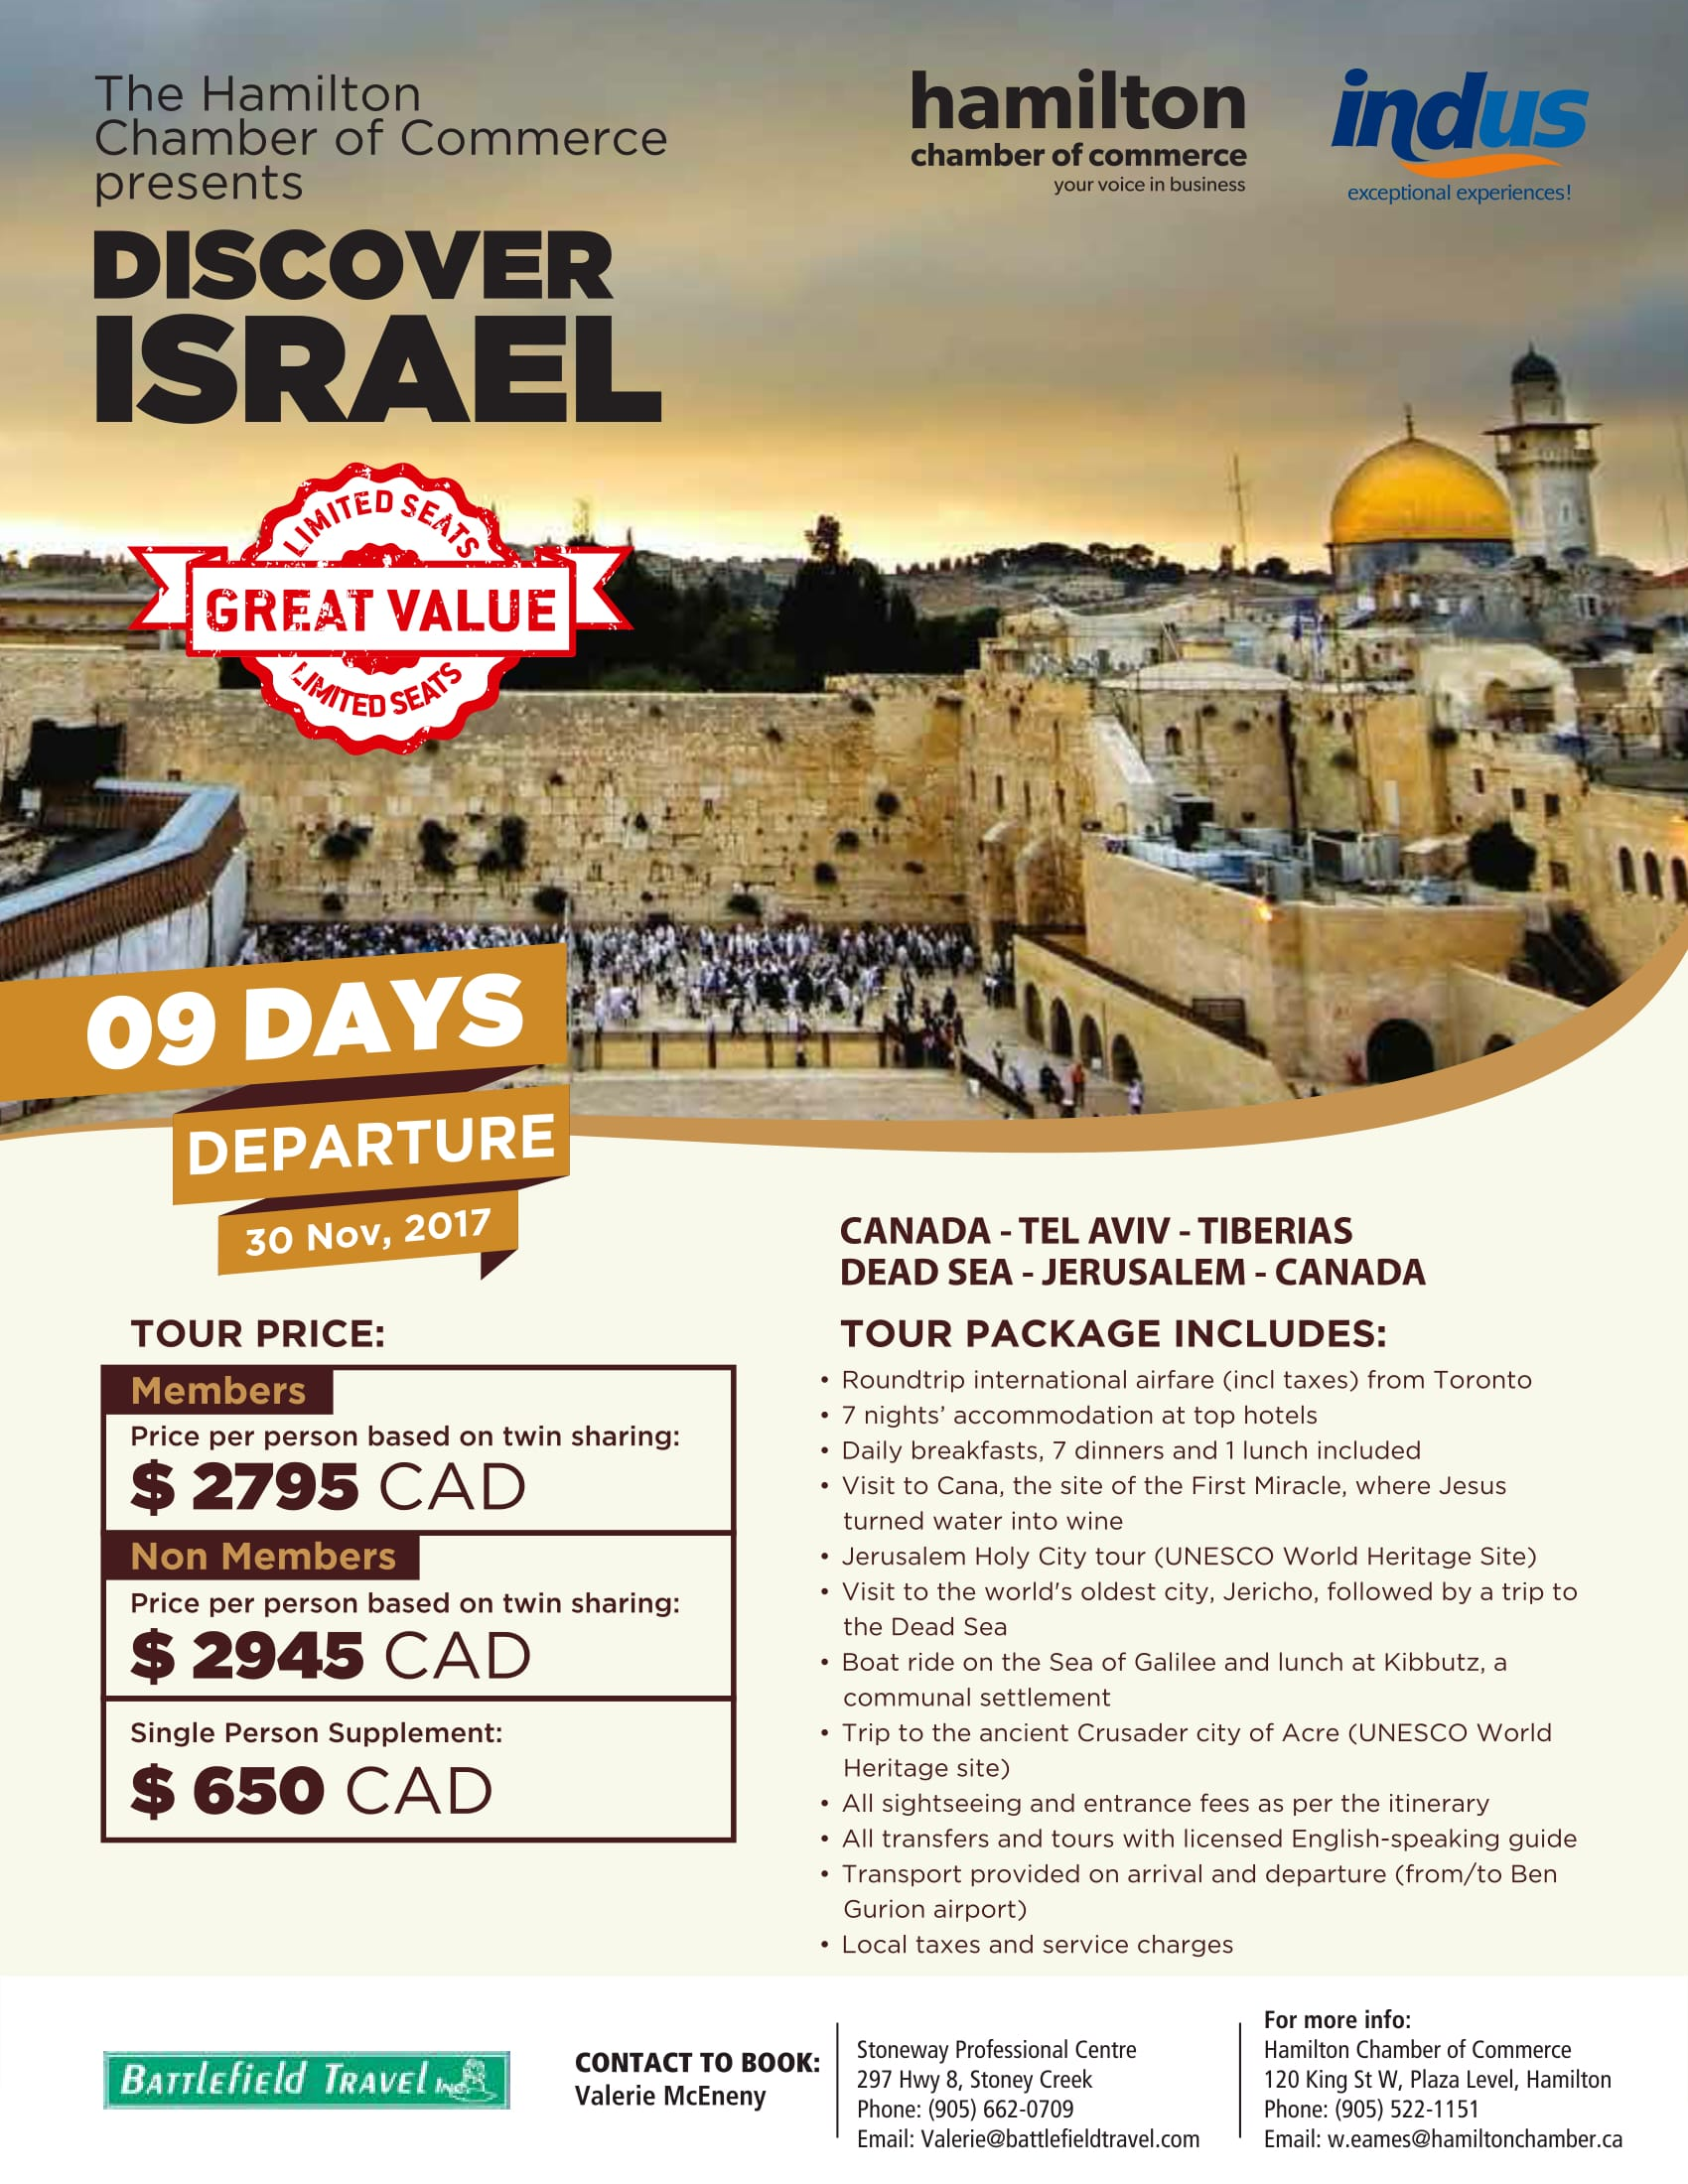 0417_03_DISCOVER_ISRAEL_HAMILTON_CHAMBER_FLYER_APR13-1